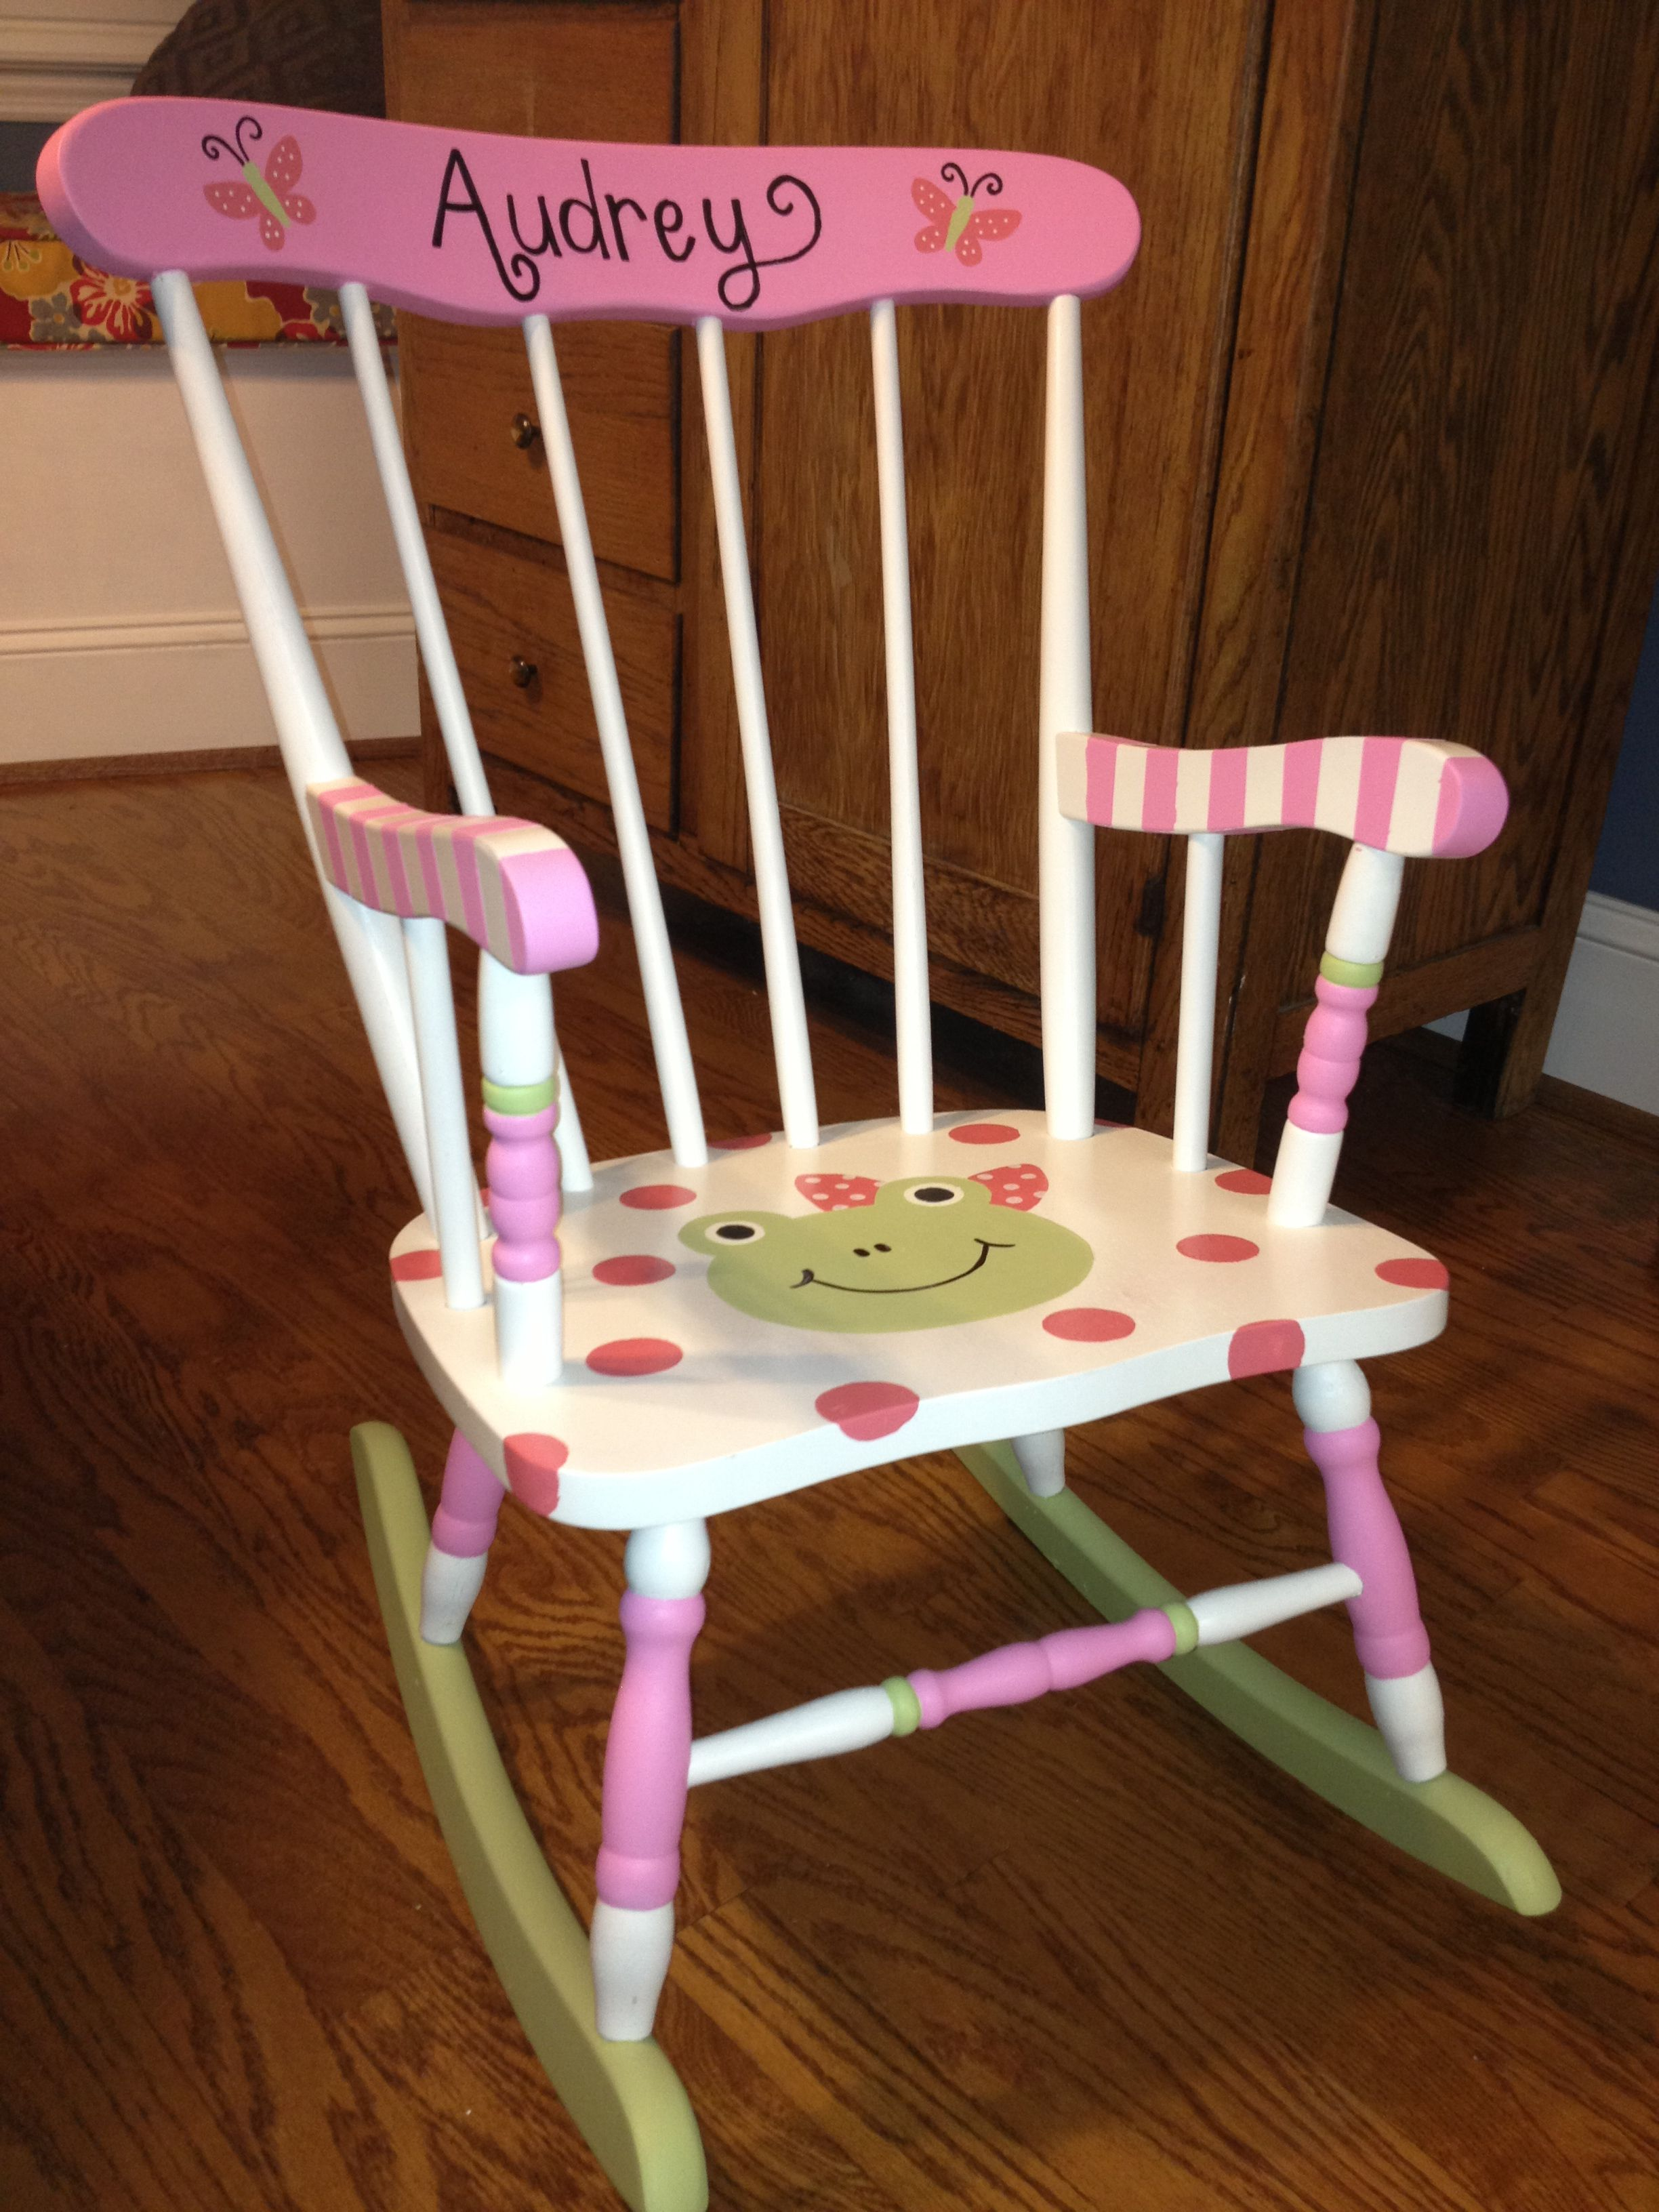 little girls chair on i painted this rocking chair for a friends little girl happy birthday audrey kids rocking chair girls chairs chalkboard projects i painted this rocking chair for a